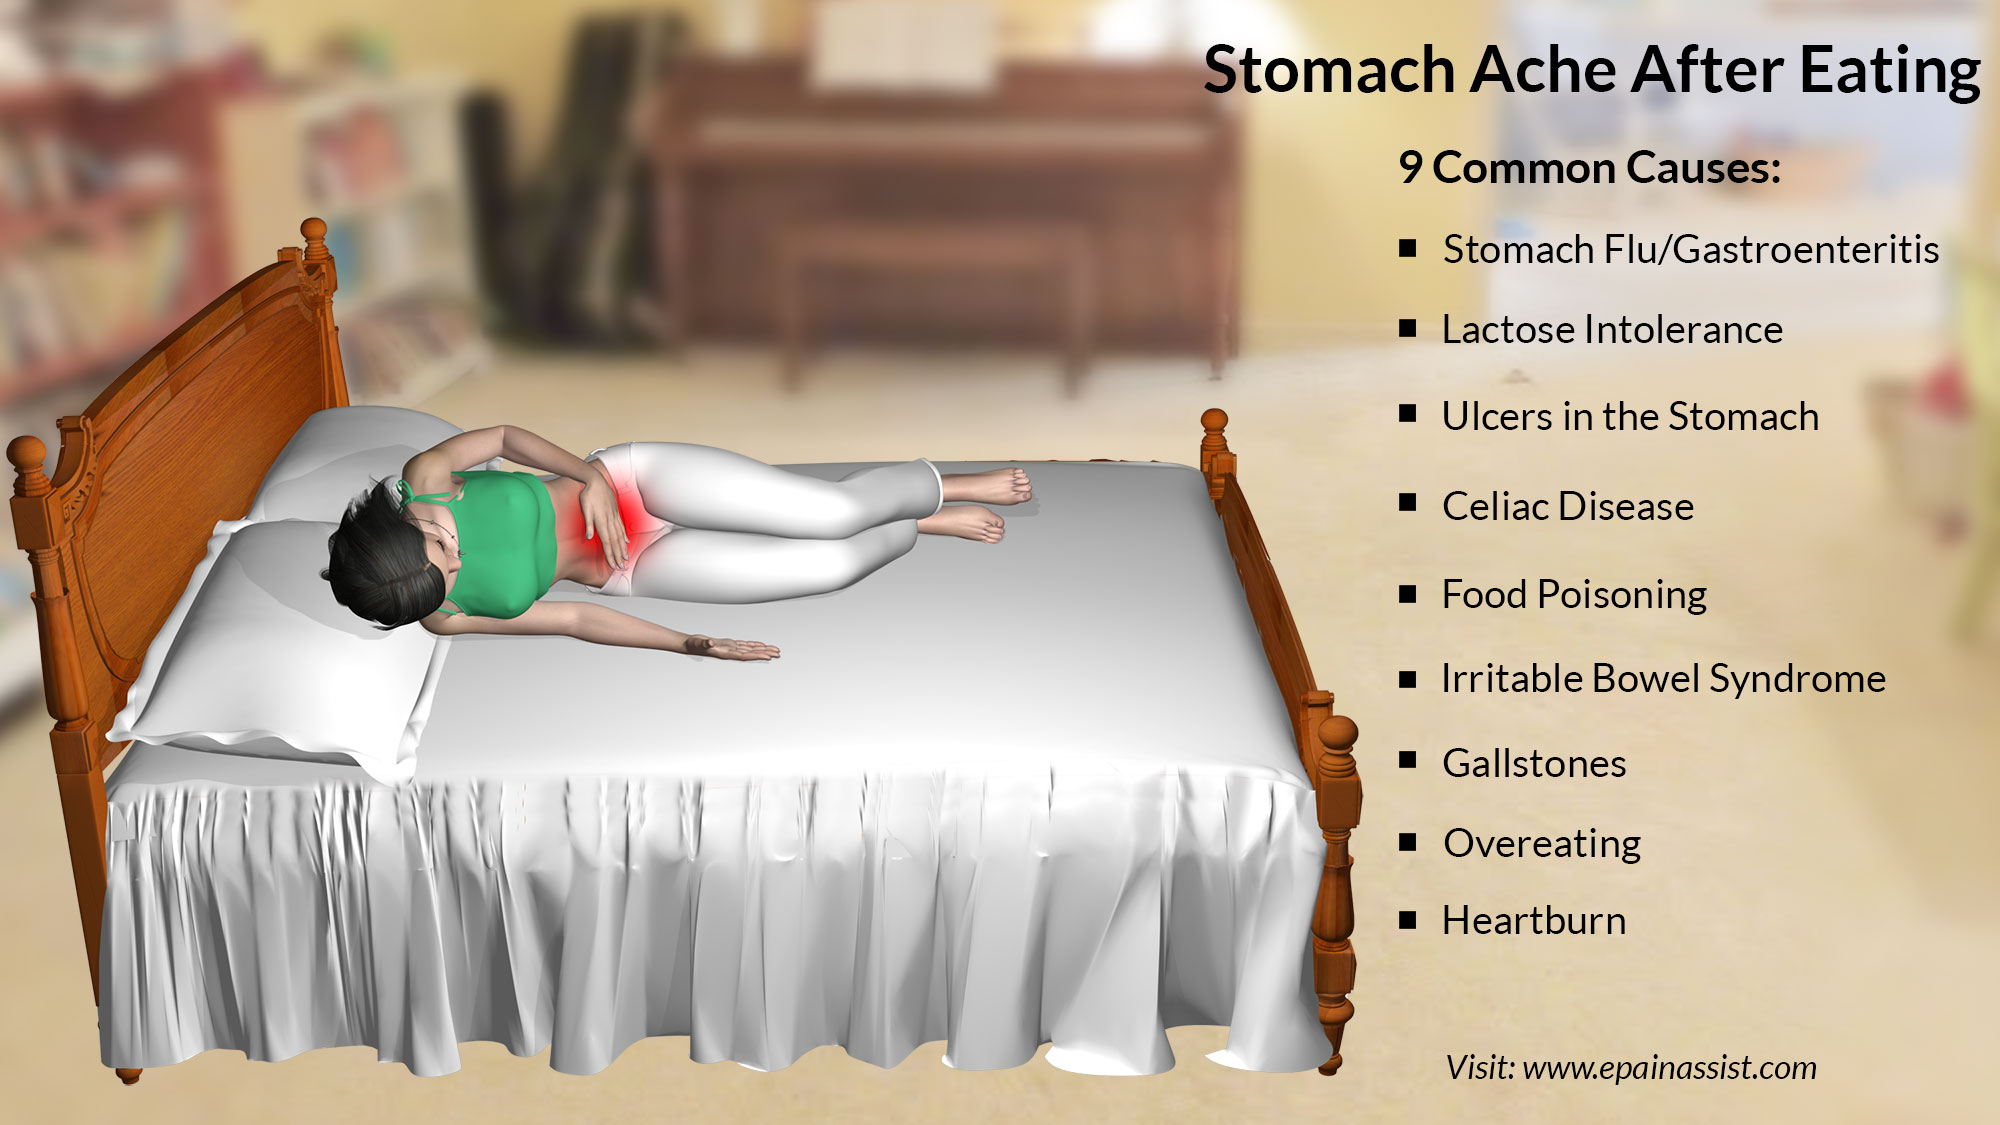 Abdominal Pain or Stomach Ache After Eating